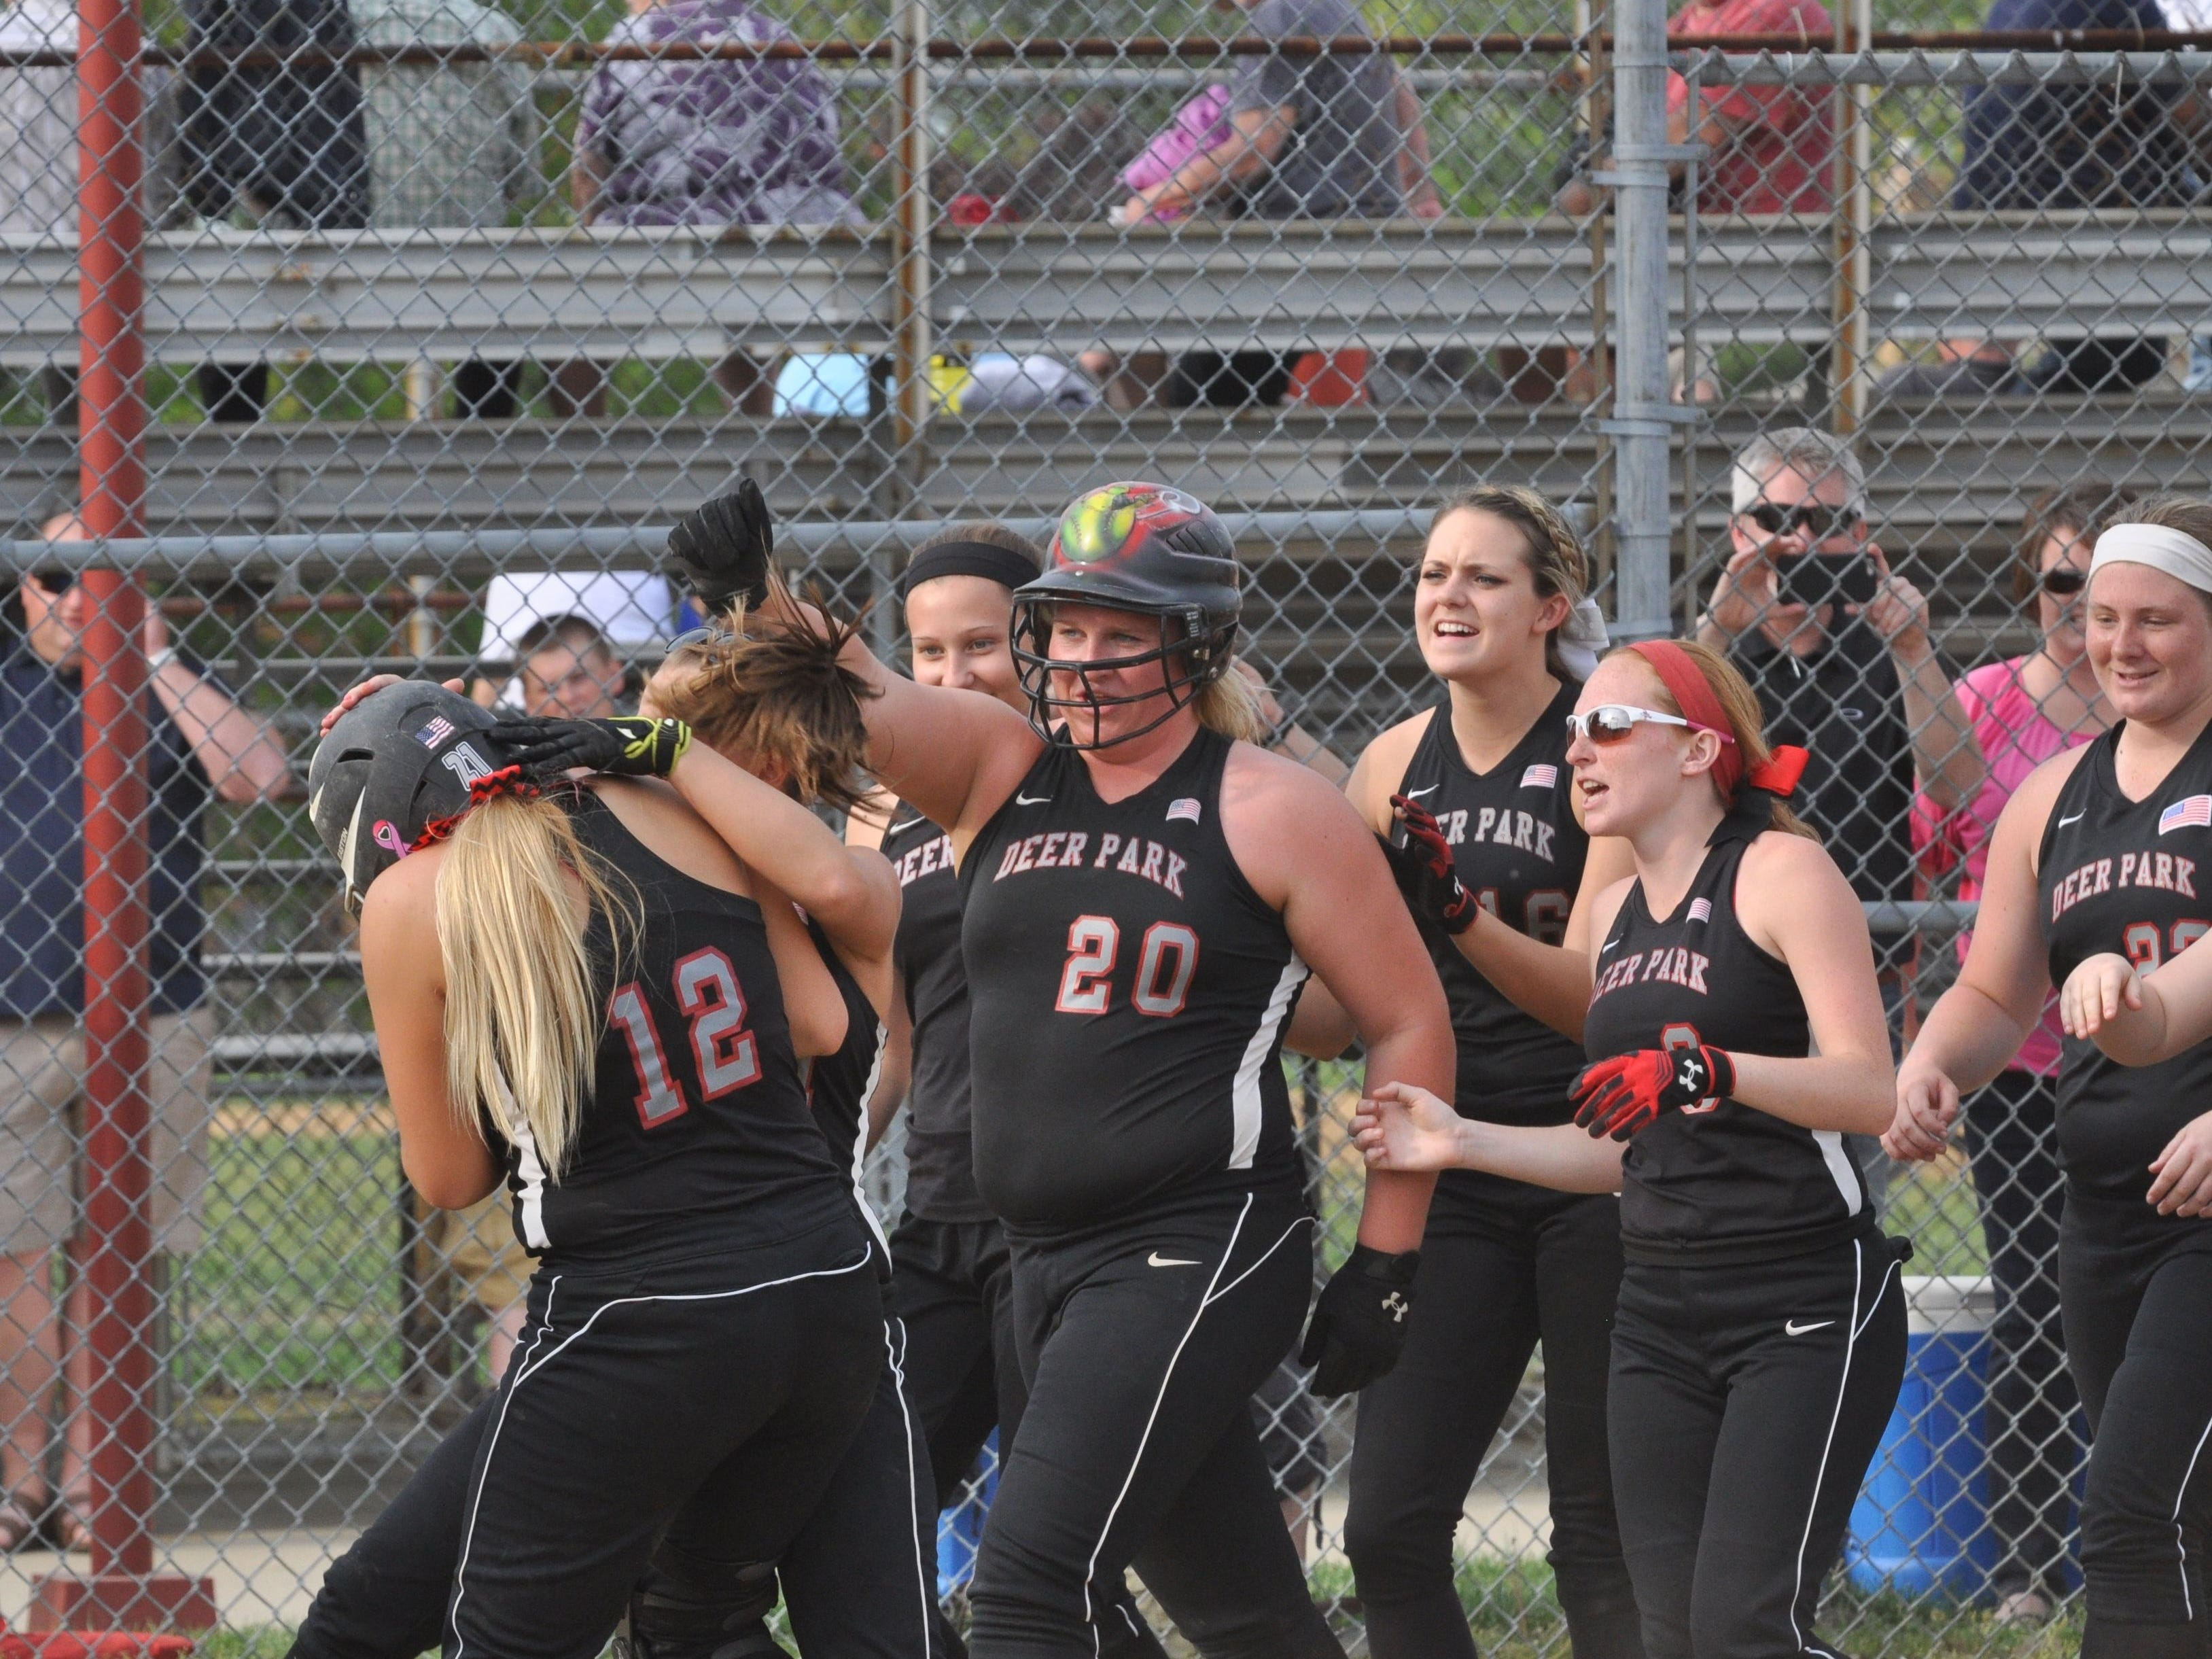 The Lady Wildcats of Deer Park celebrate a home run over their new fence donated by Bobby Castrucci.